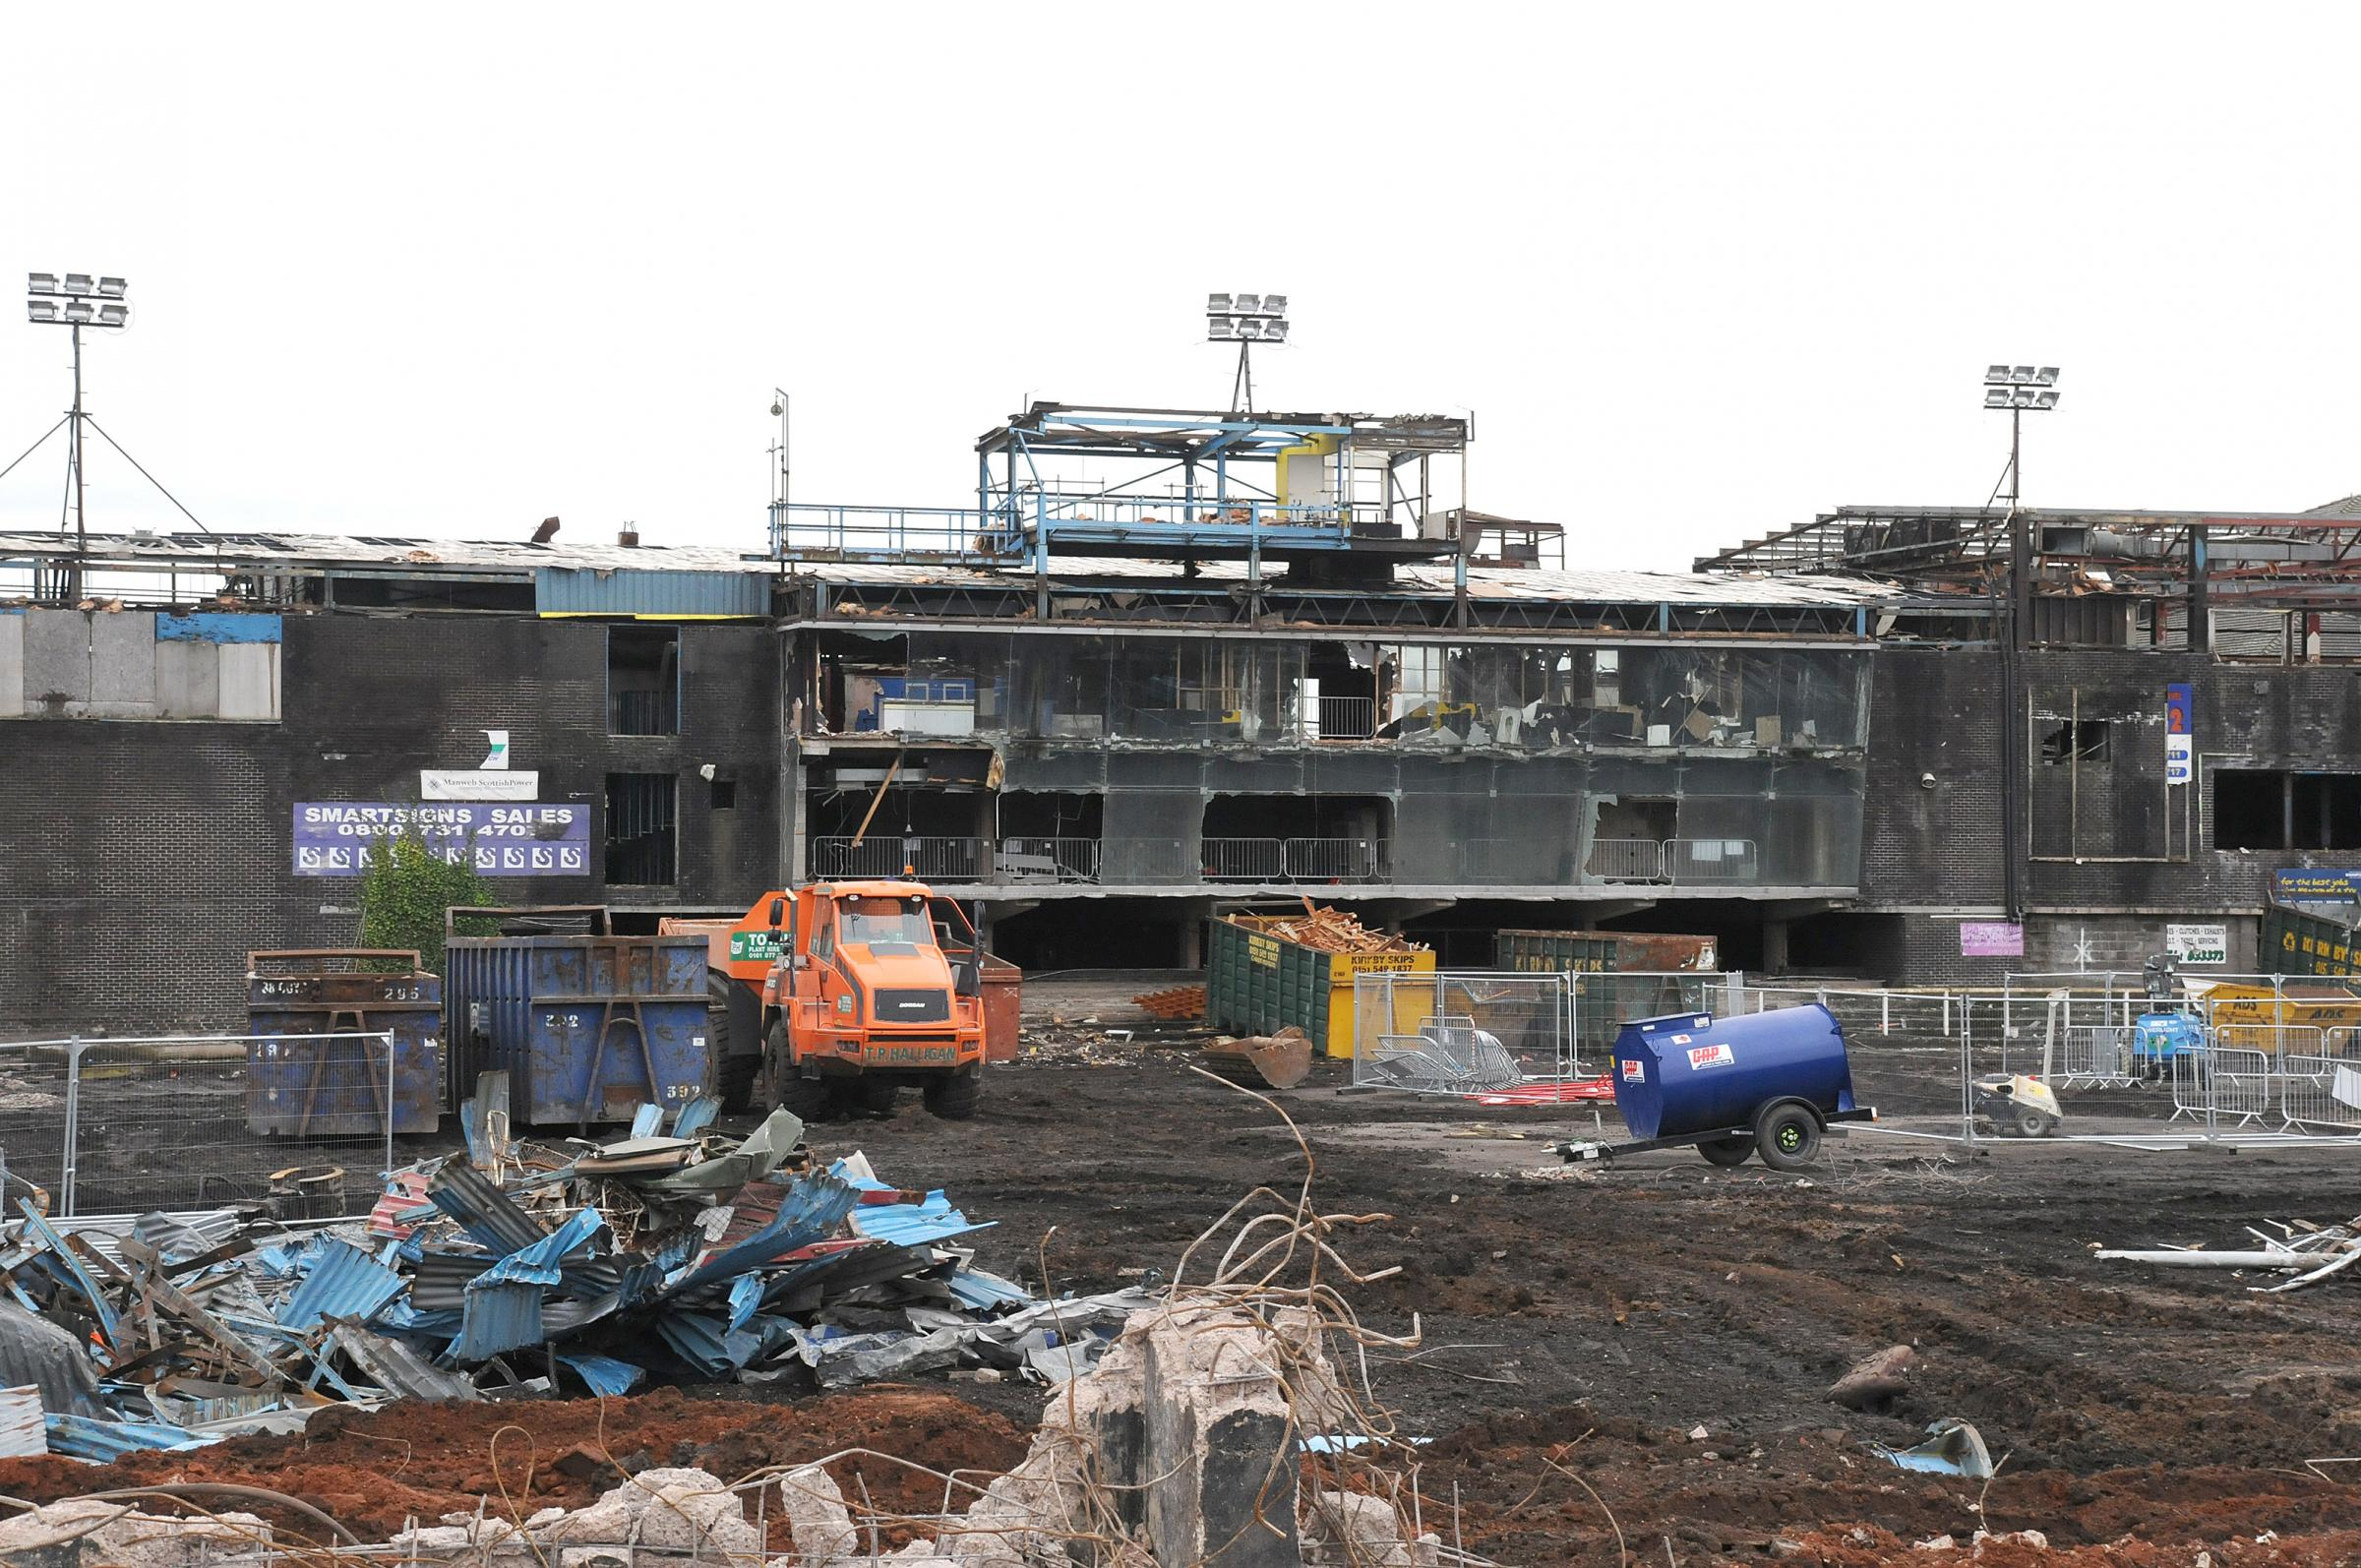 The demolition of Wilderspool in 2014